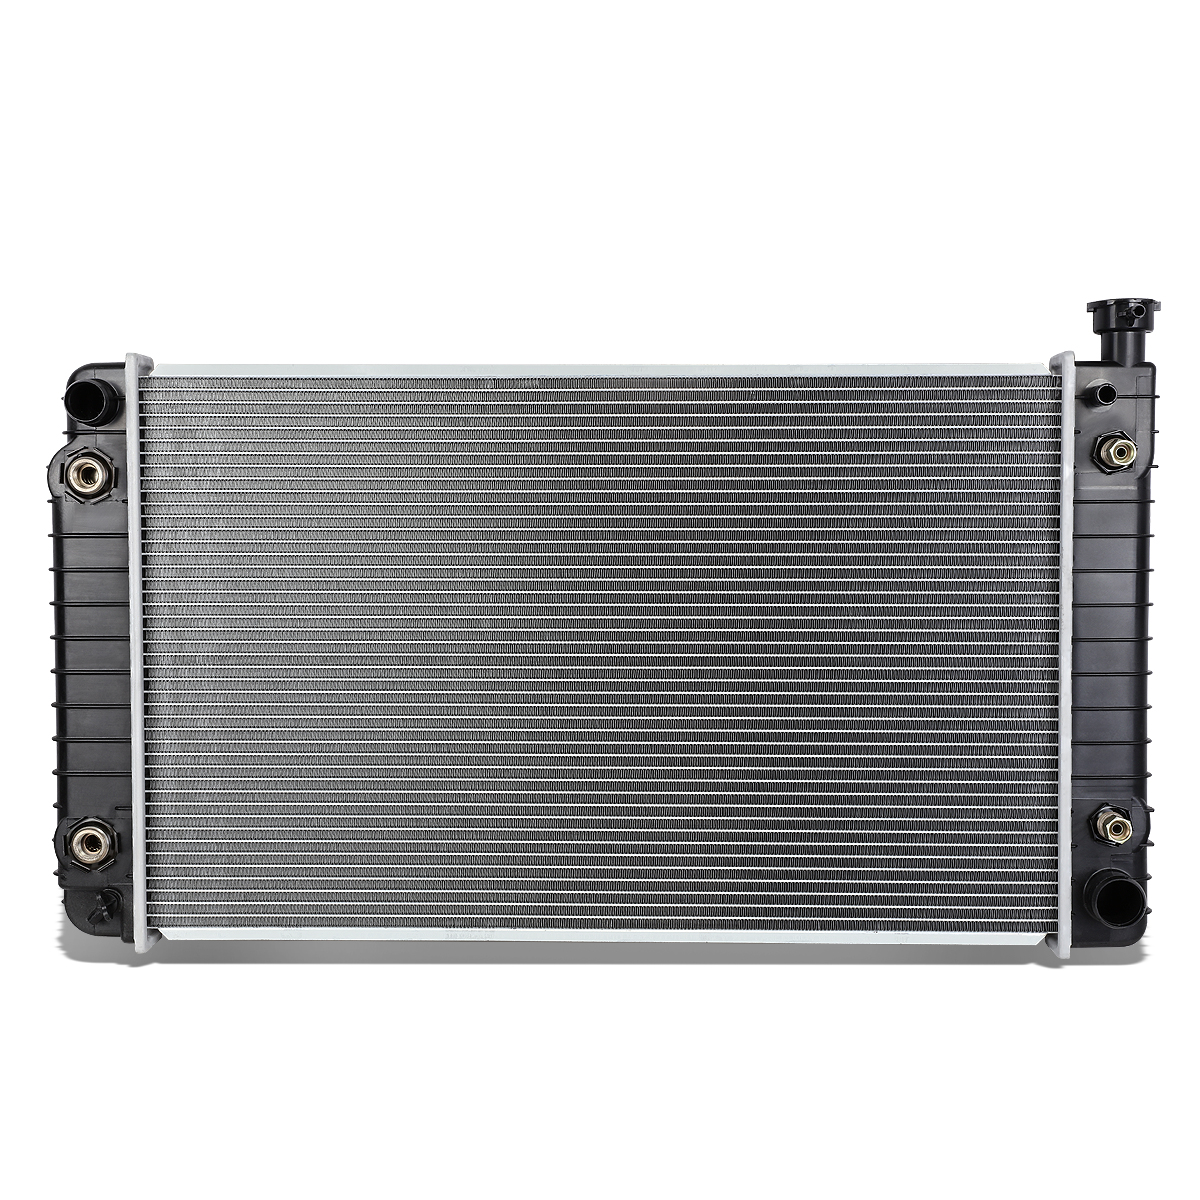 For 1988-1995 Chevy GMC C/K Pickup/Suburban AT Performance OE Style Full Aluminum Core Radiator 622